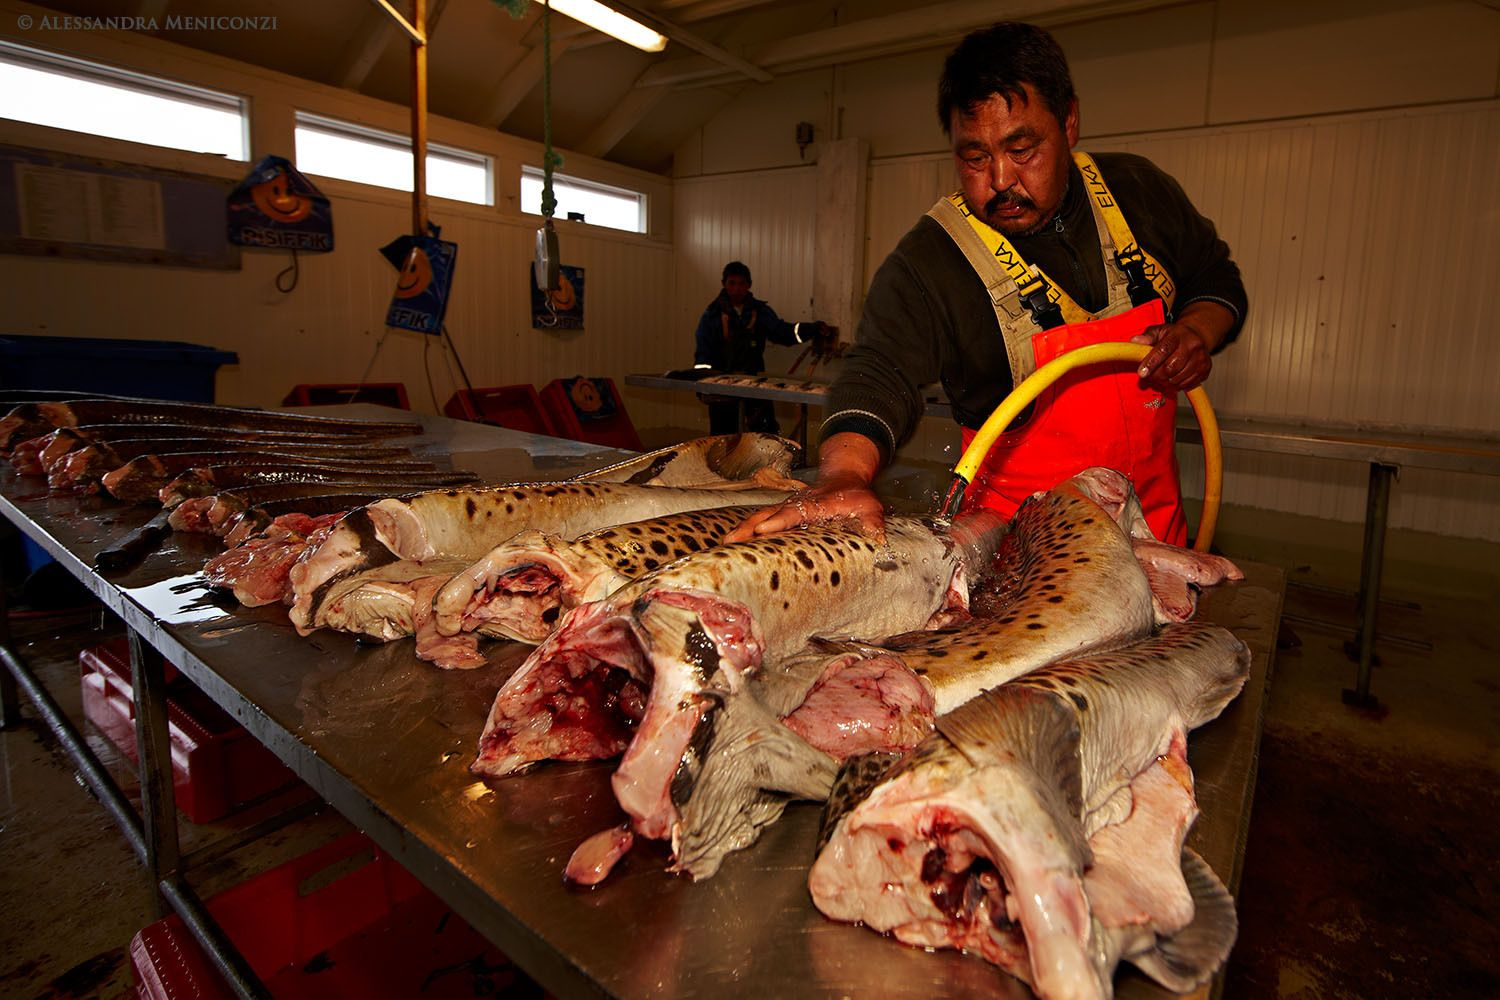 Spotted wolffish and other freshly-caught fish being cleaned and prepared for sale at a fish market in Qaqortoq Village, South Greenland.